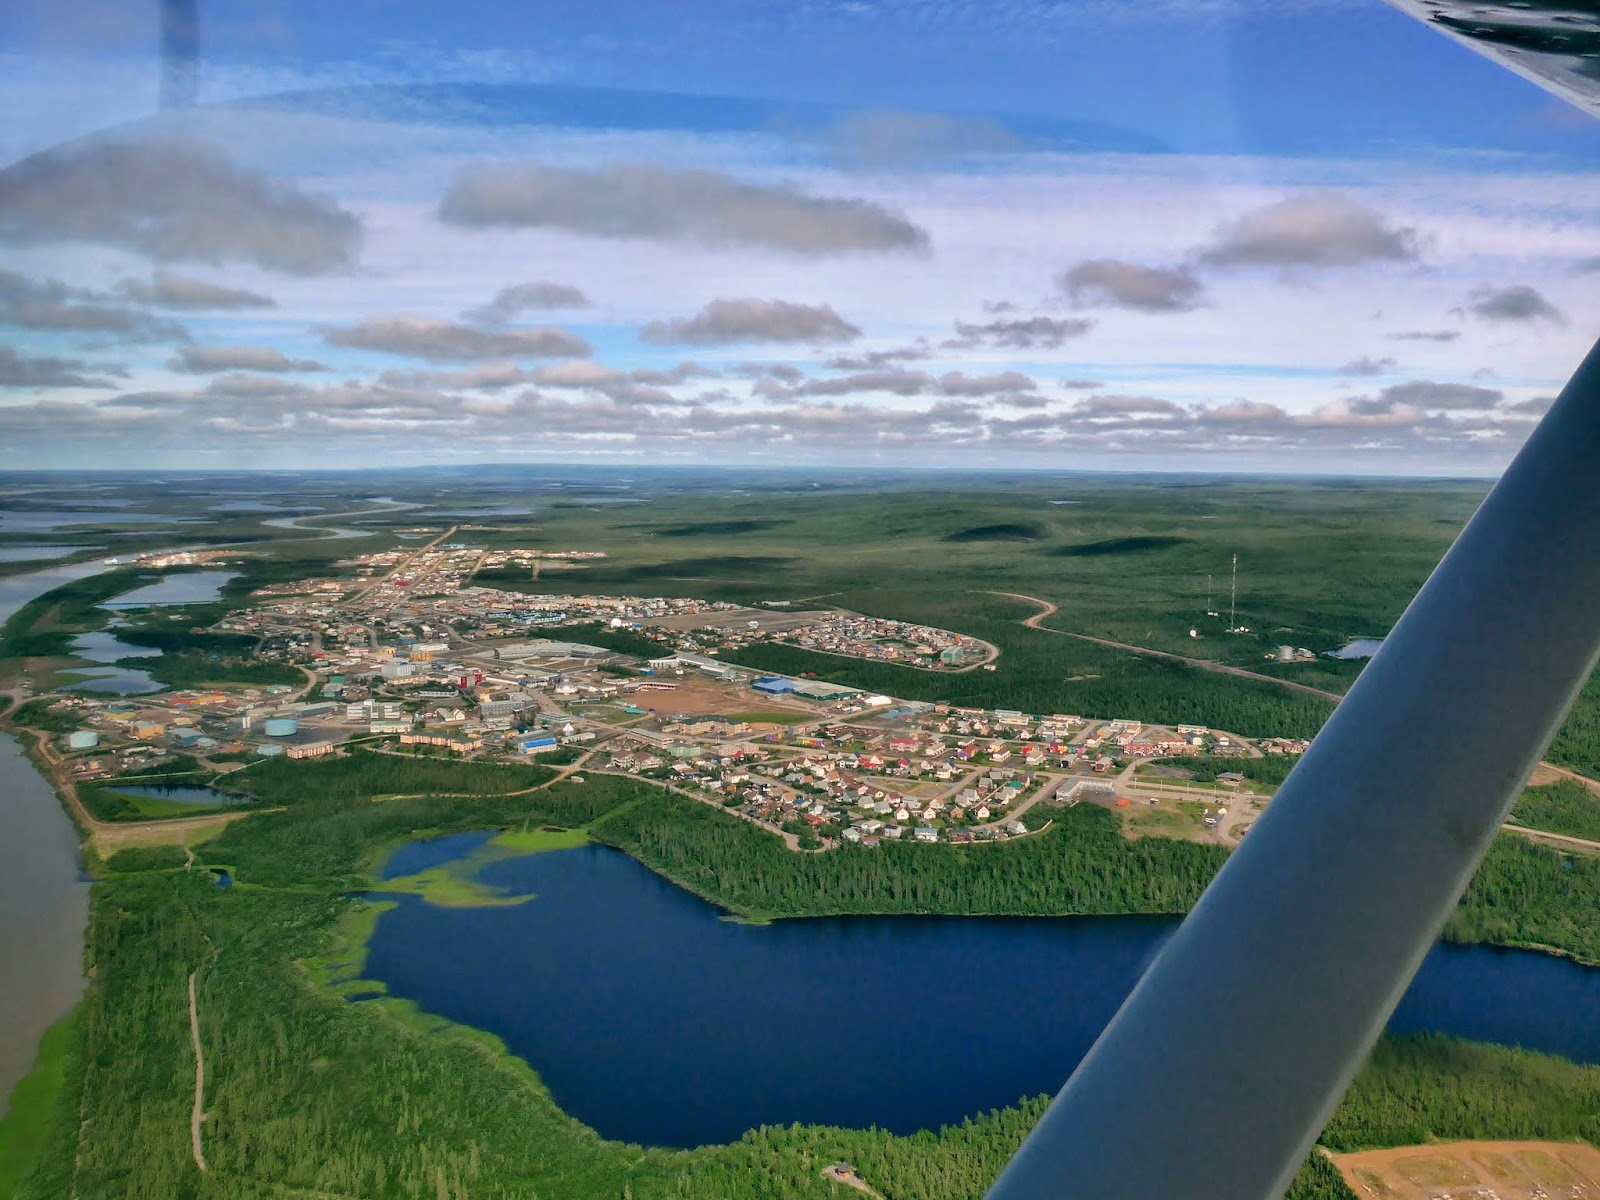 Inuvik Northwest Territories from the air.